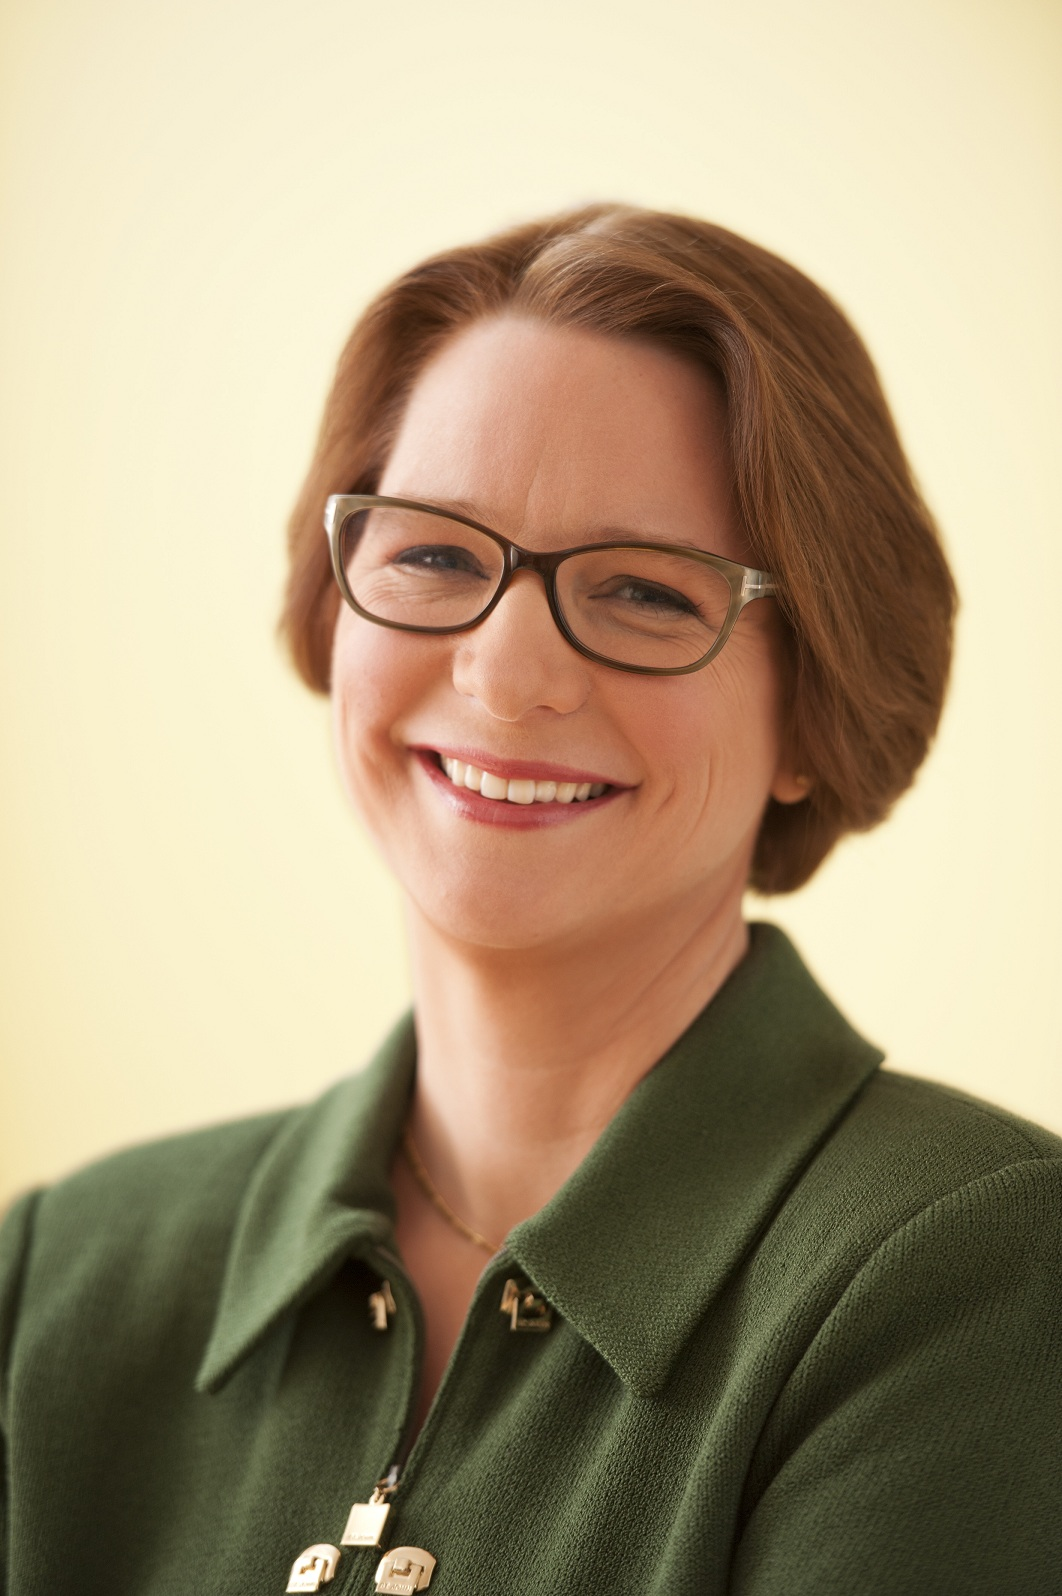 Darcy Burner in green collared shirt, wearing glasses, smiling